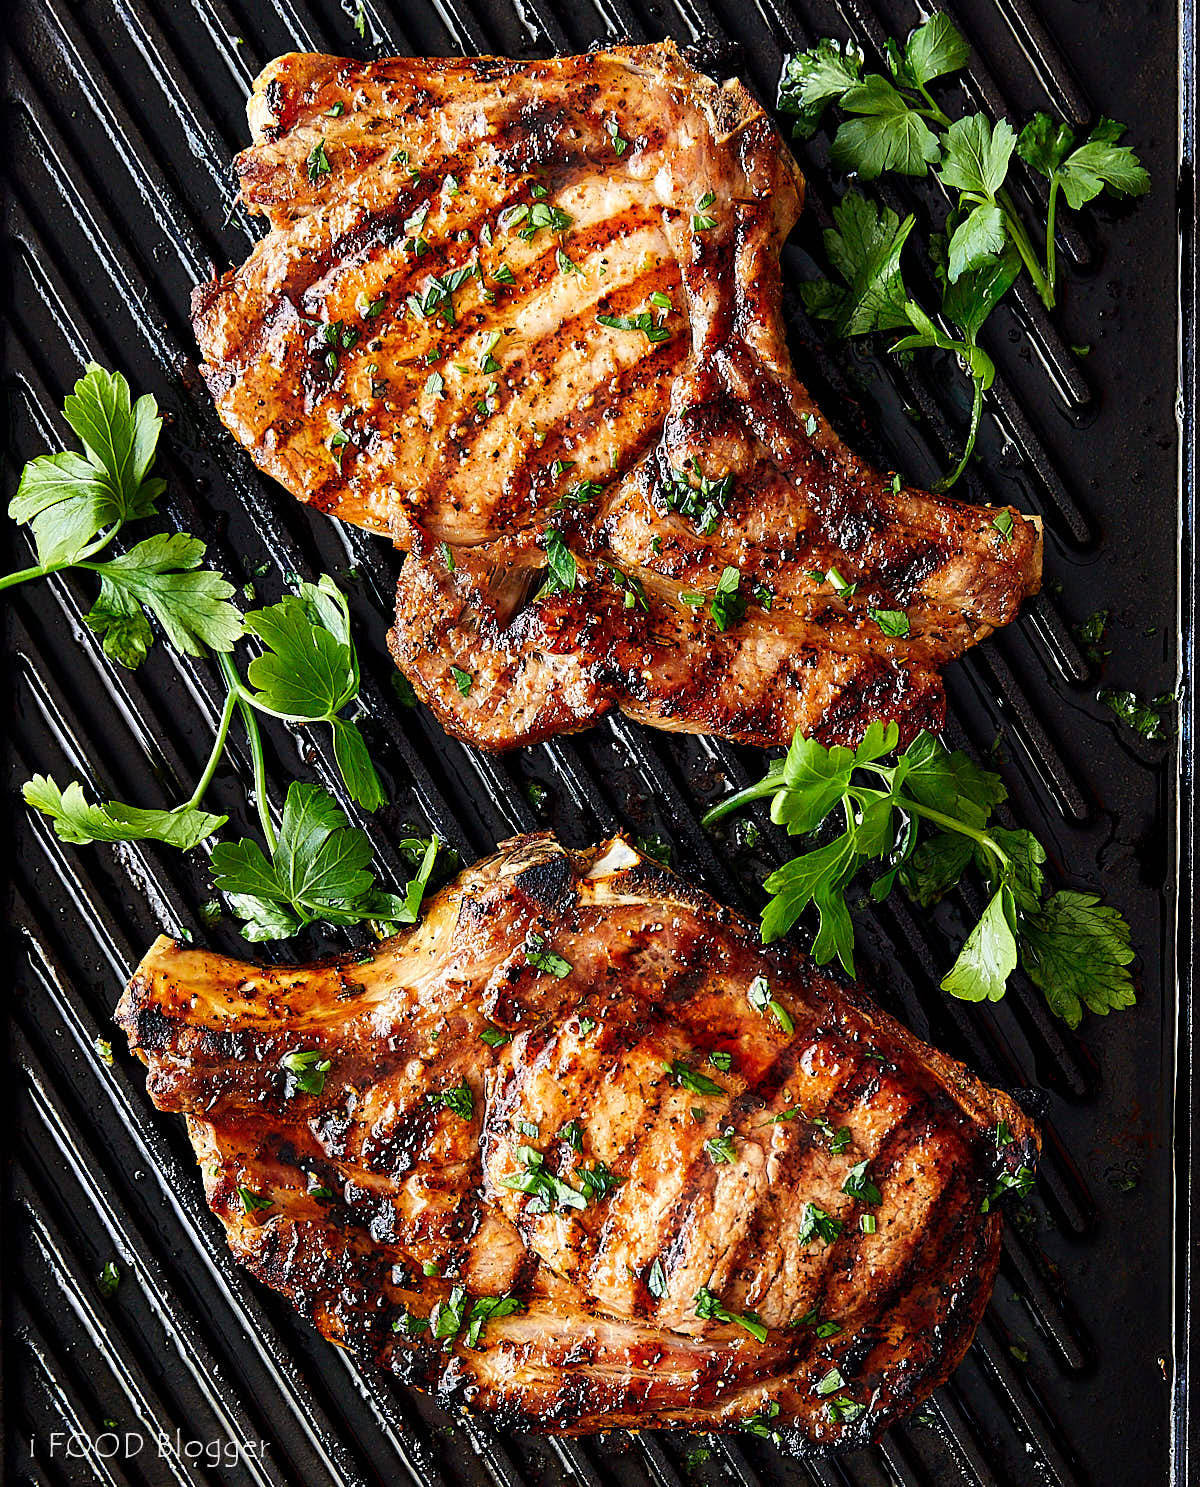 Broiled Pork Chops  Broiled Pork Chops with Creole Seasoning i FOOD Blogger